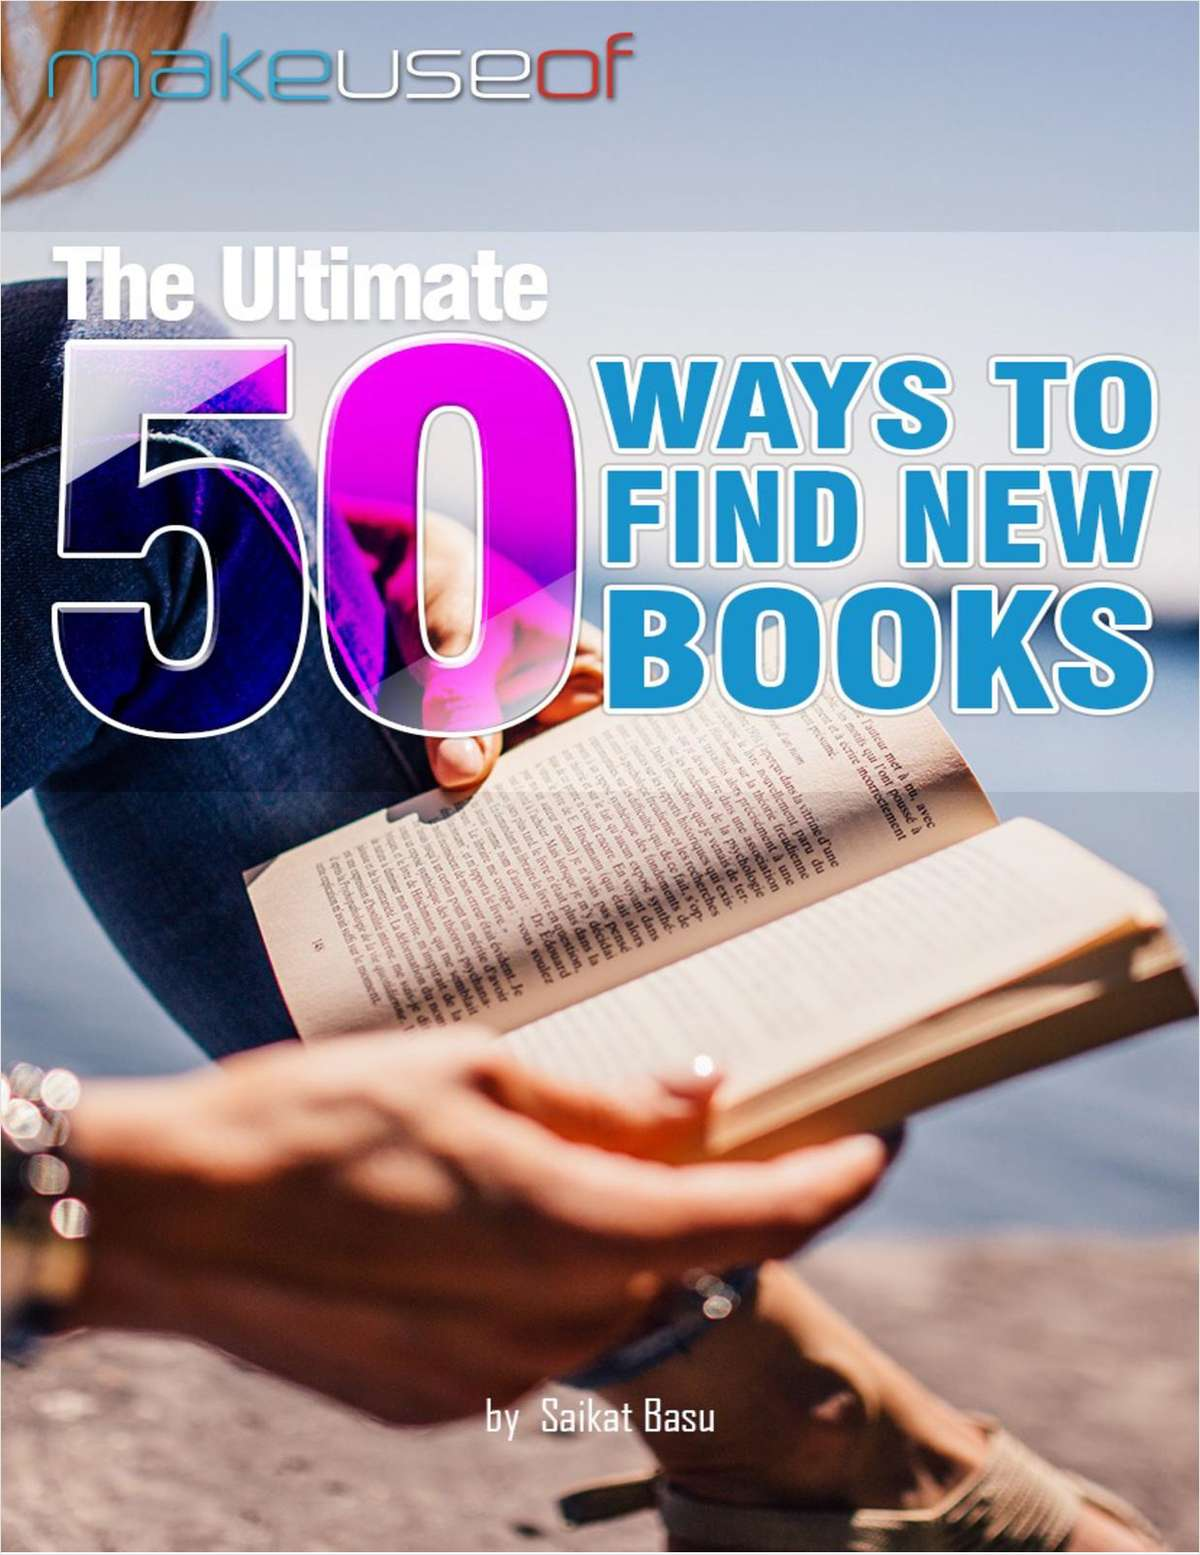 The Ultimate 50 Ways to Find New Books